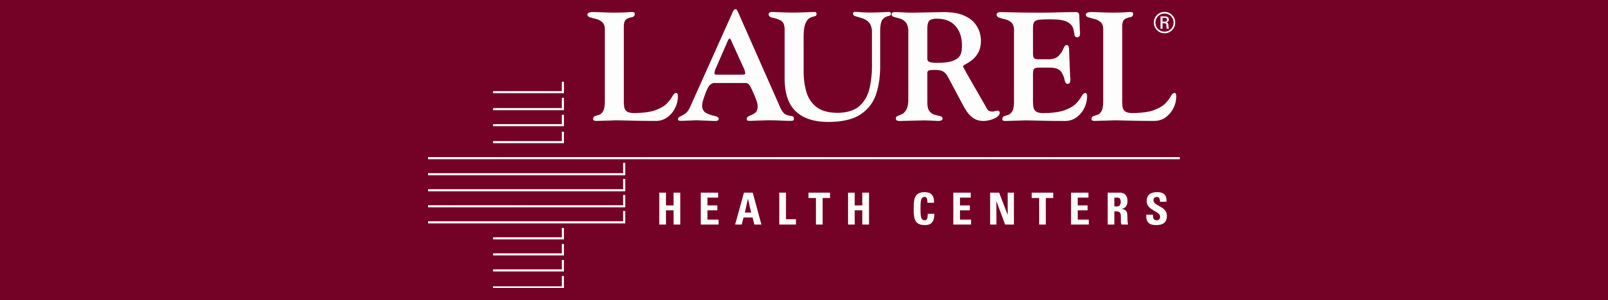 Laurel Health Centers Logo 2018